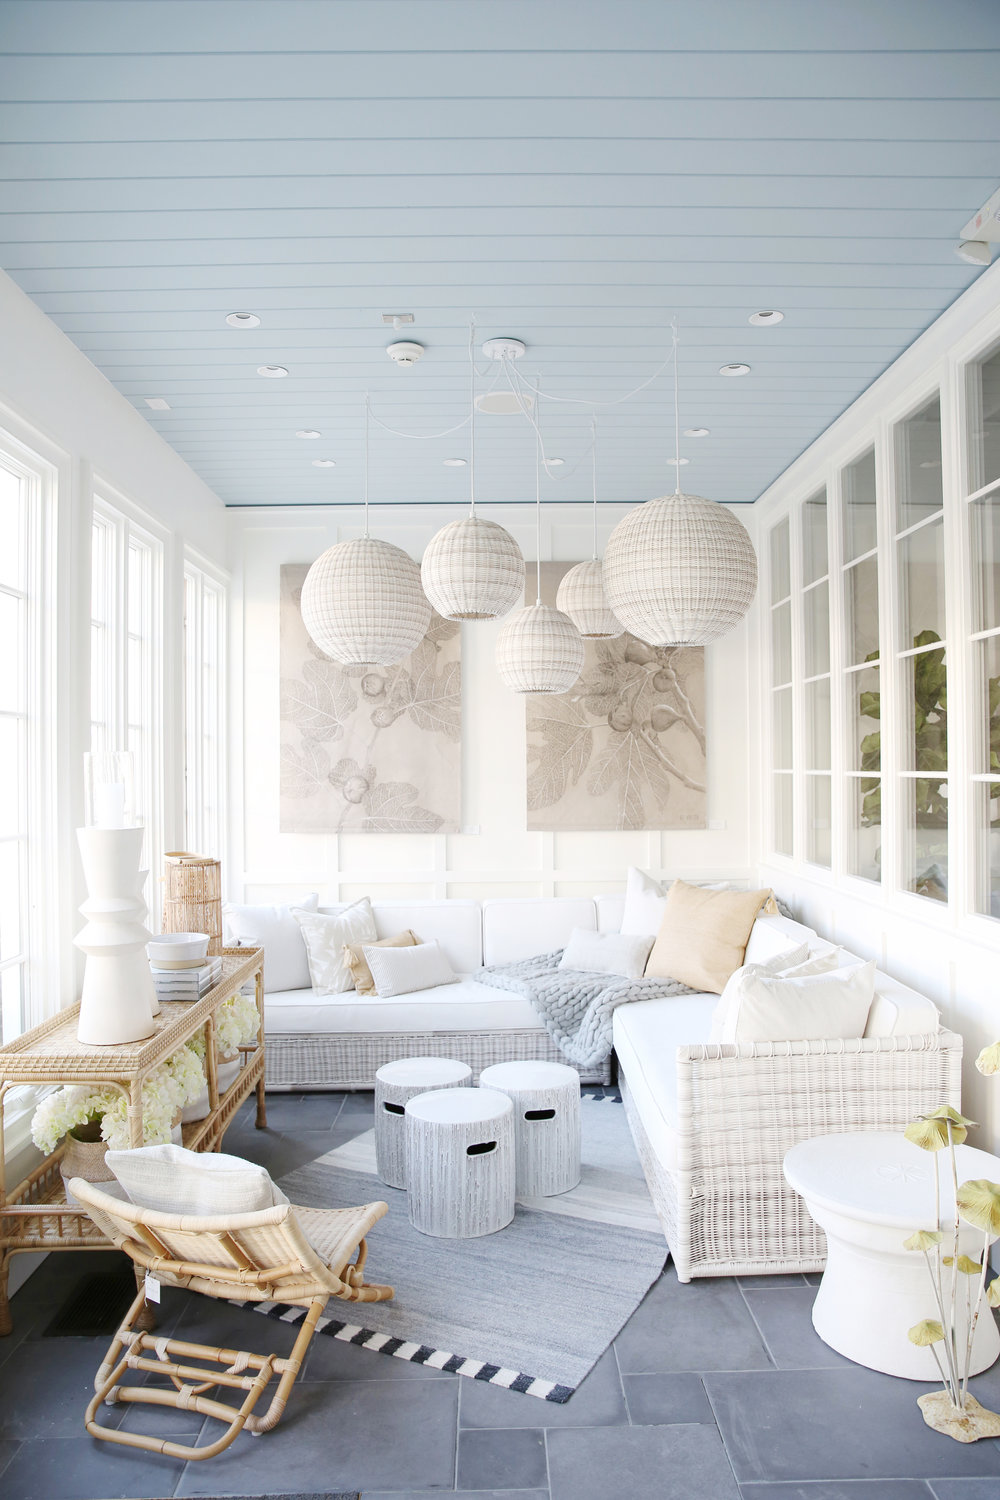 Captivating NYC And NJ Based Lifestyle Interior Design Photographer JENNIFER LAVELLE  PHOTOGRAPHY   Interiors, Exteriors,